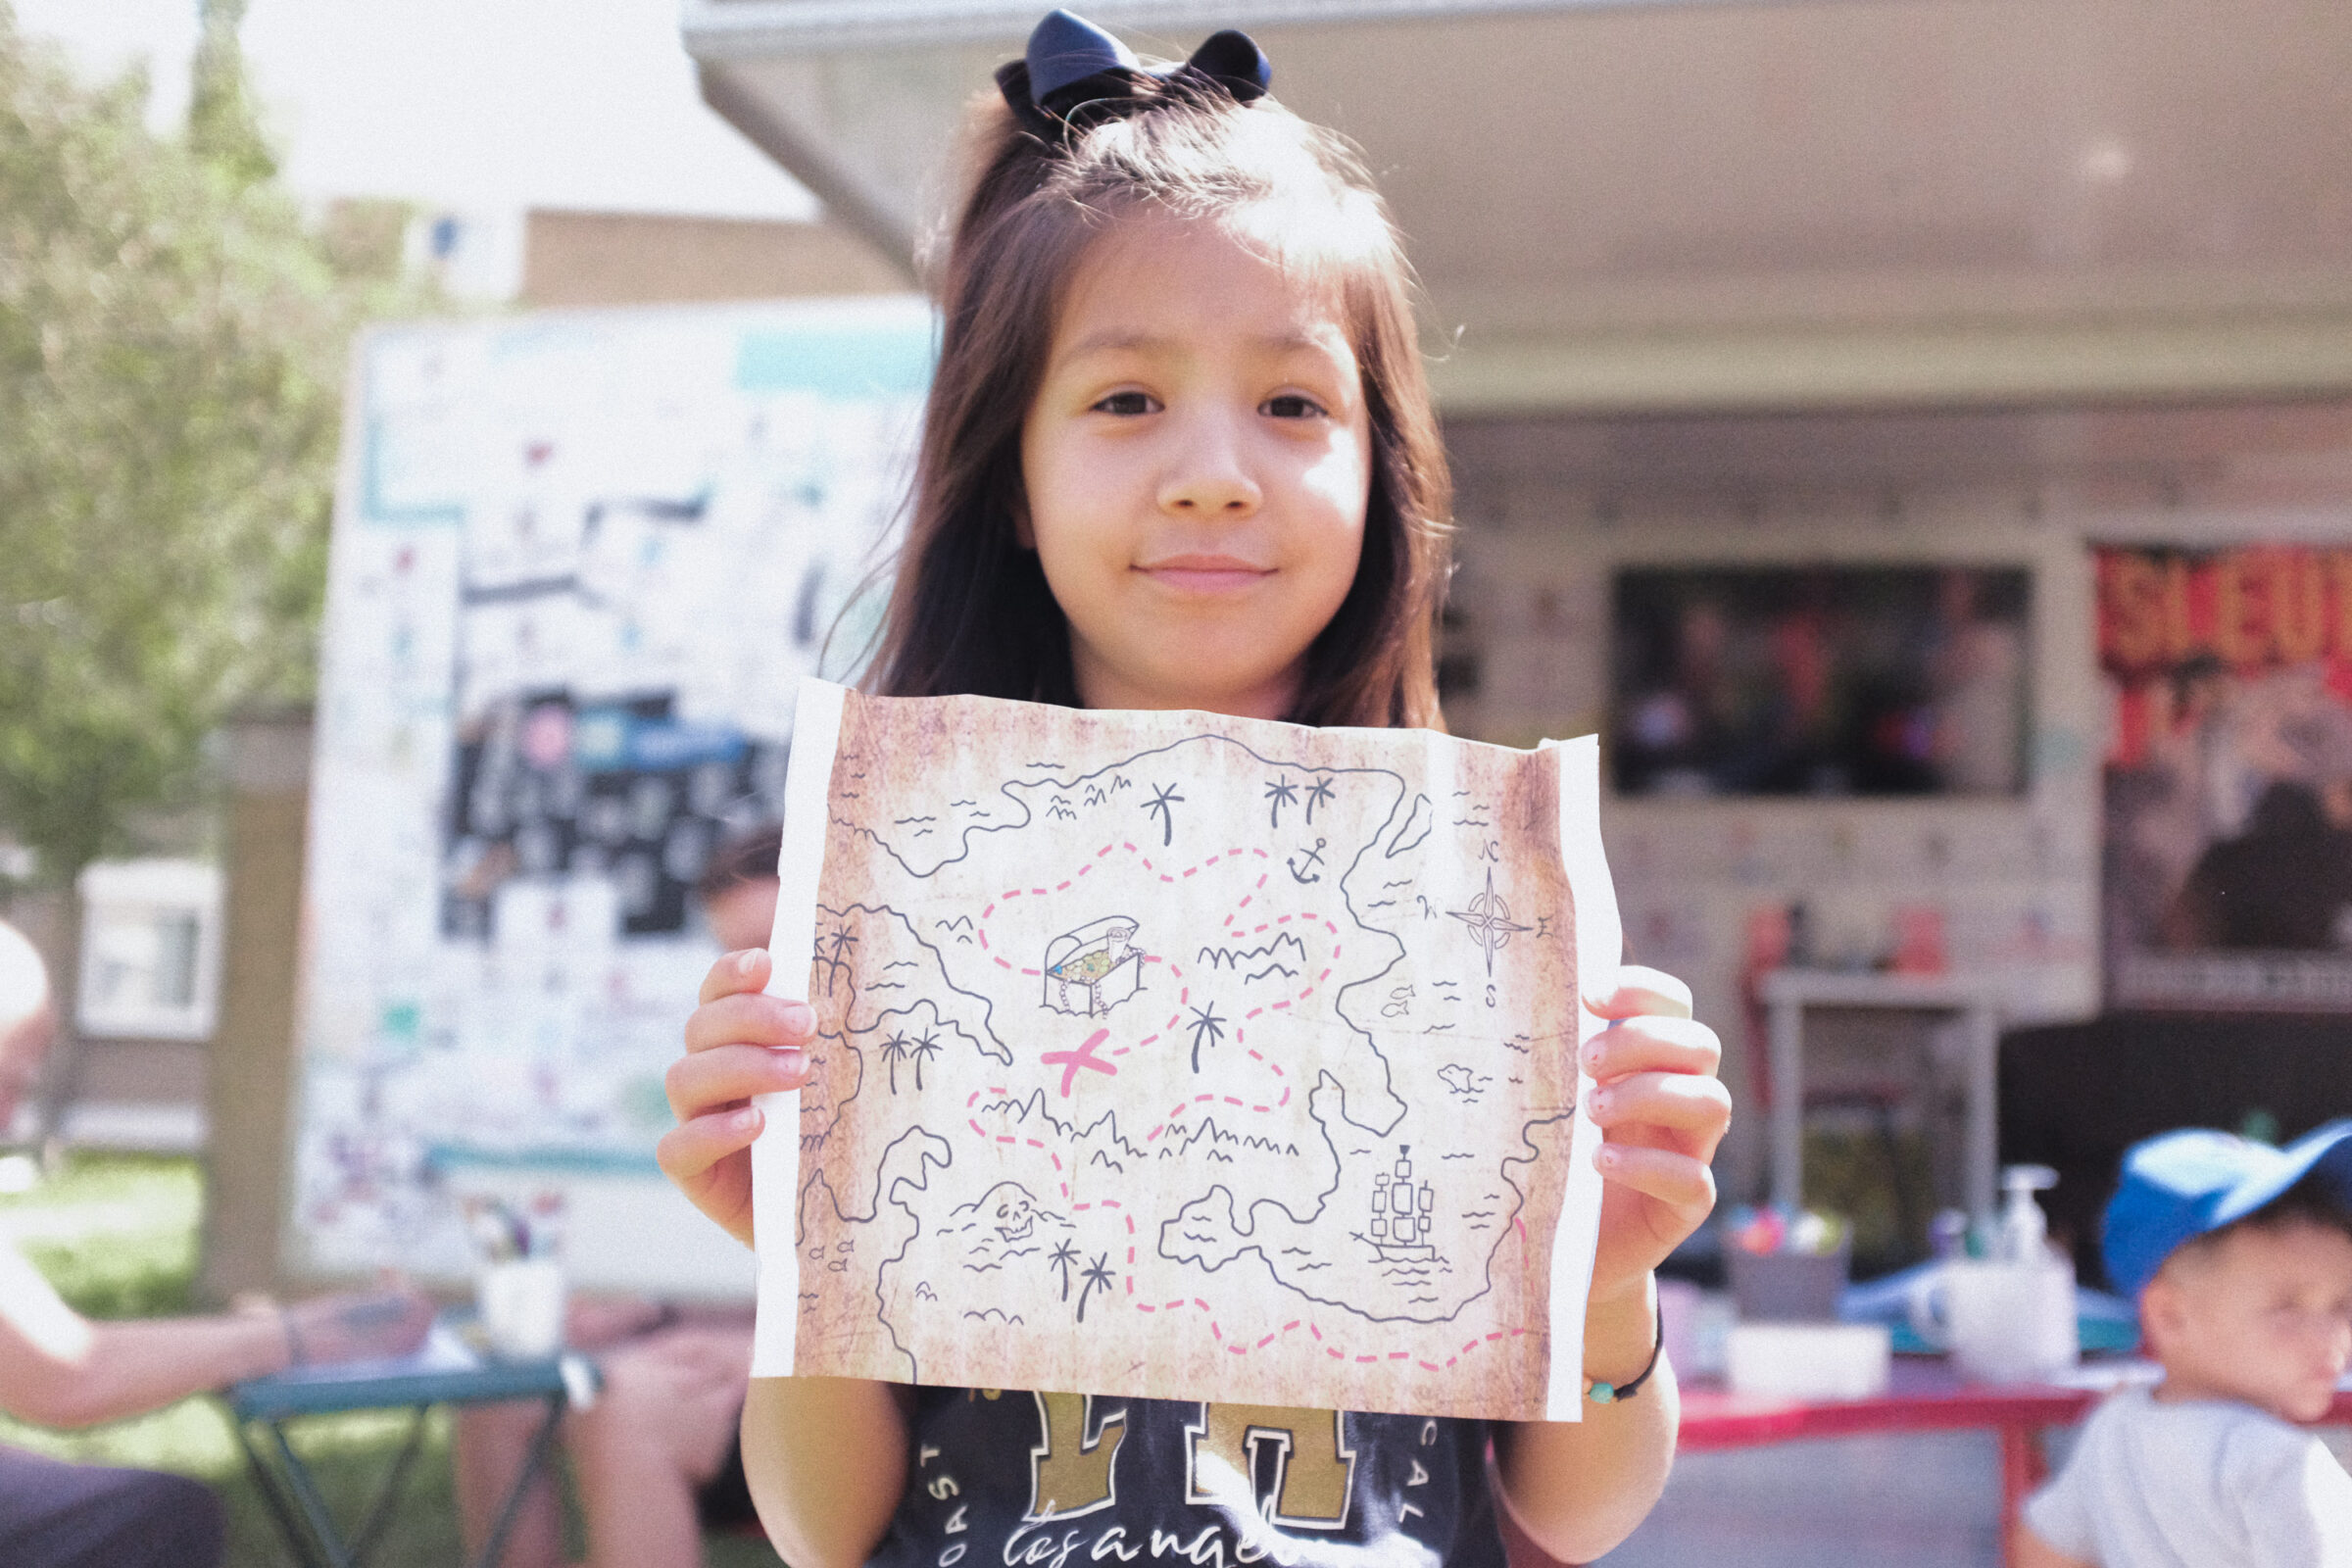 A young person poses for a portrait while holding up a treasure map